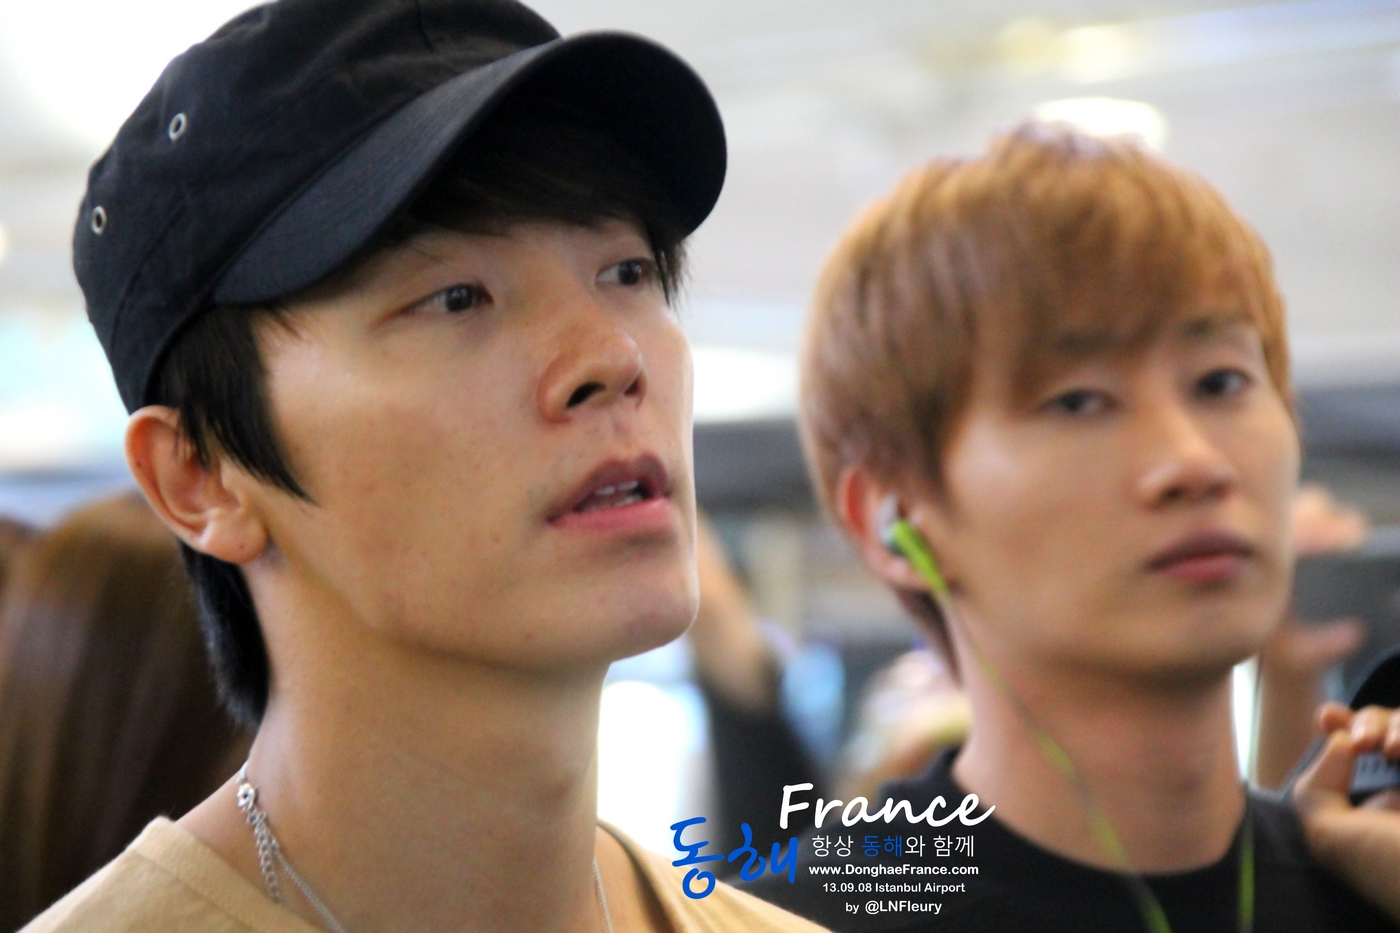 donghae at ataturk airport to korea 6p � from 130908